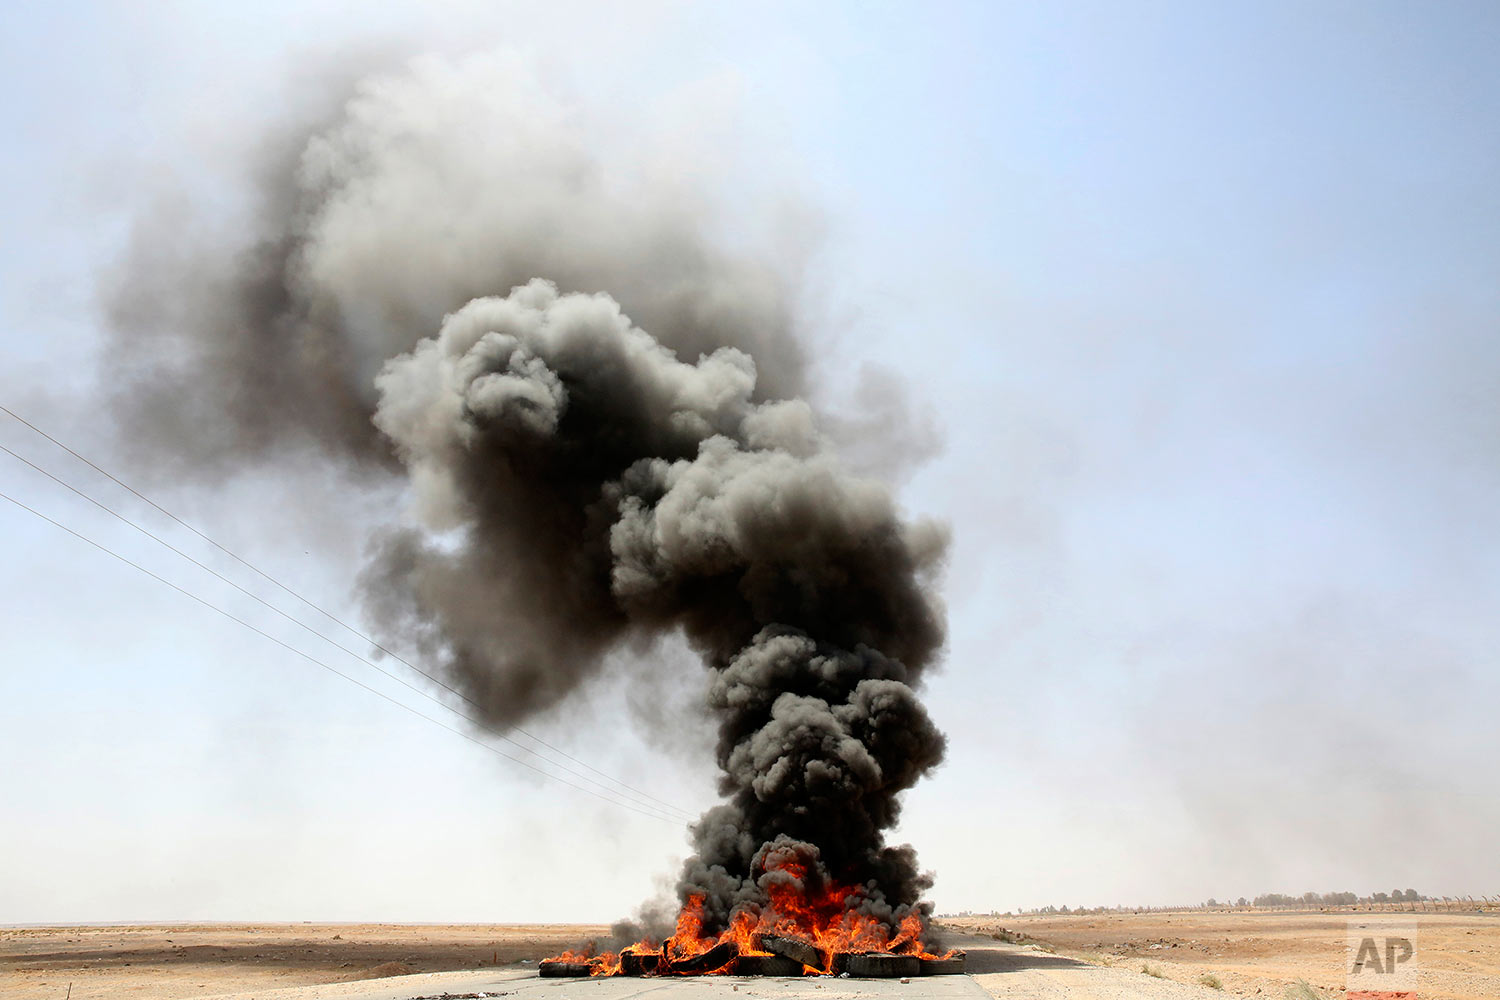 A pile of tires is seen burning on a road leading to the southern Jordanian town of al-Jafr on Tuesday, July 18, 2017. Hundreds of people in al-Jafr staged protests Tuesday following the conviction of a local soldier a day earlier in the shooting deaths of three U.S. military trainers. (AP Photo/Reem Saad)